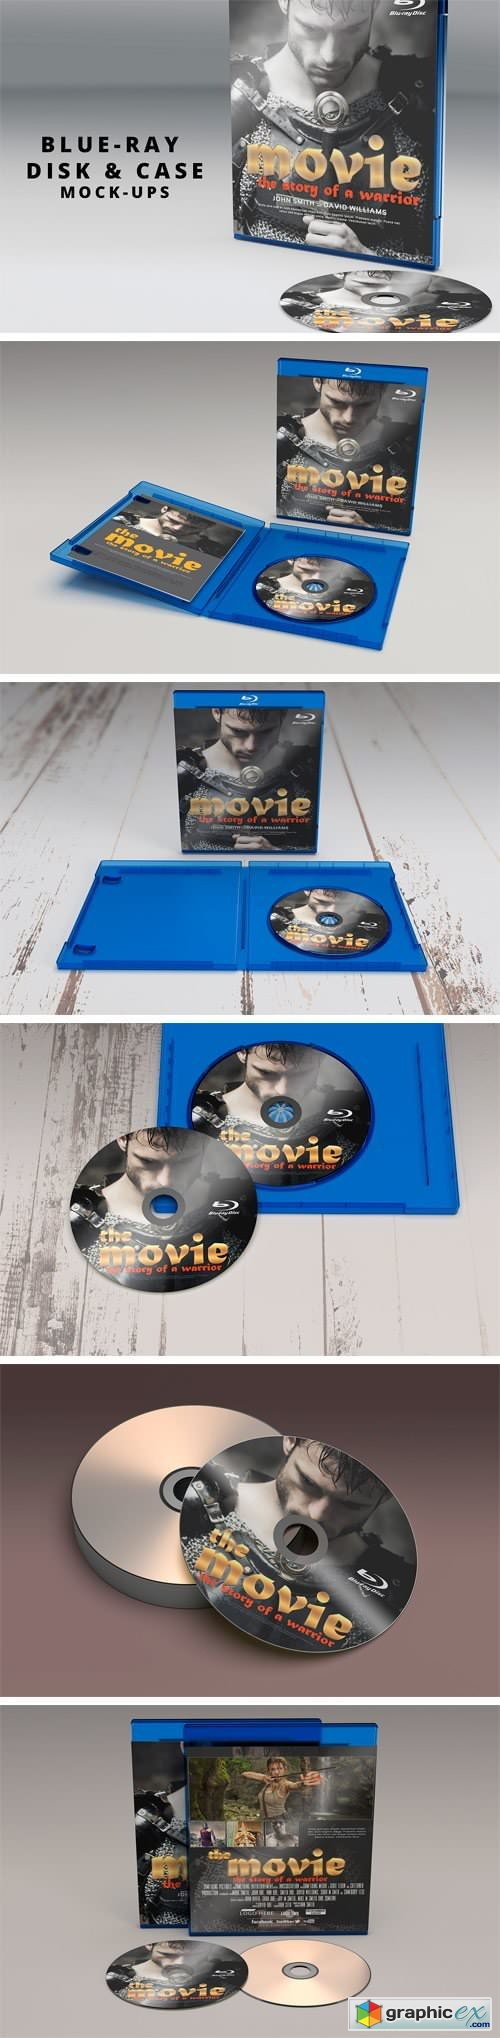 Blue Ray Disk & Cover Mockup